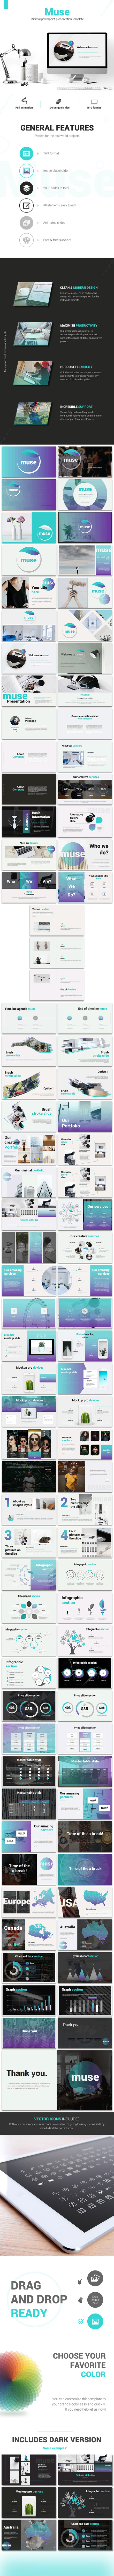 Muse - Creative Powerpoint Presentation - PowerPoint Templates Presentation Templates